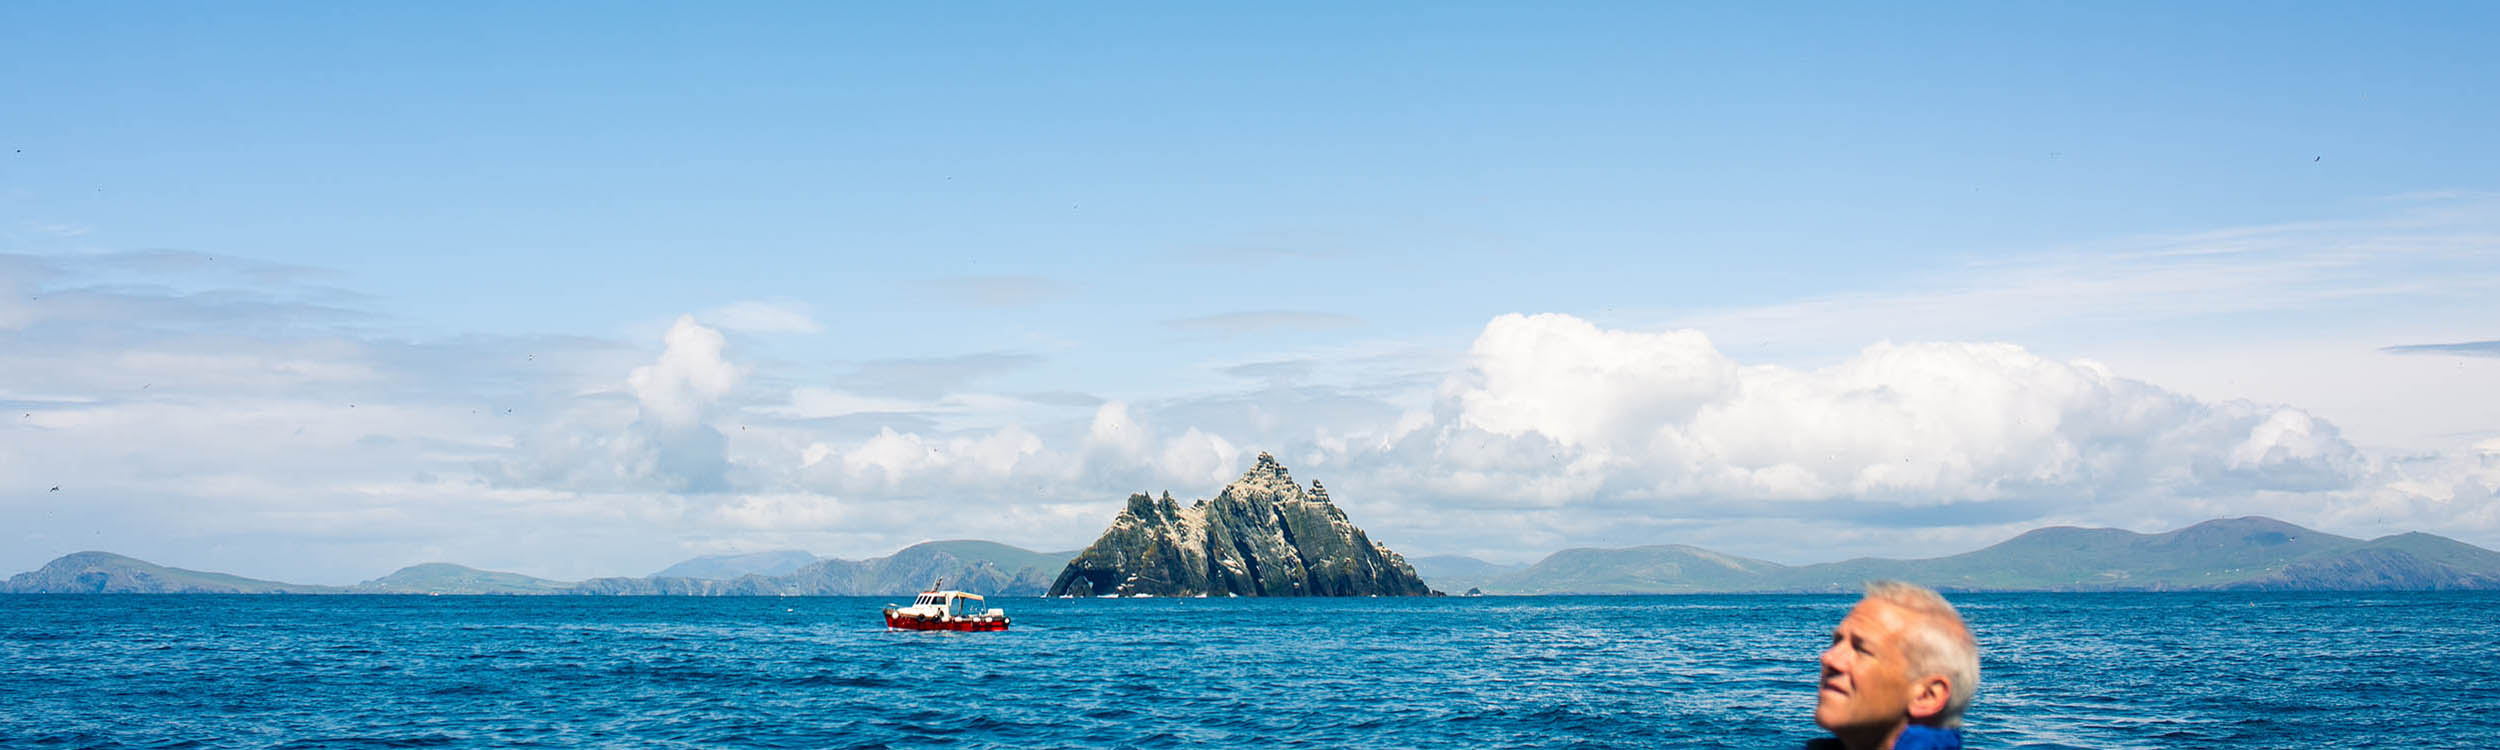 IRELAND_KERRY_SKELLIGS_0026